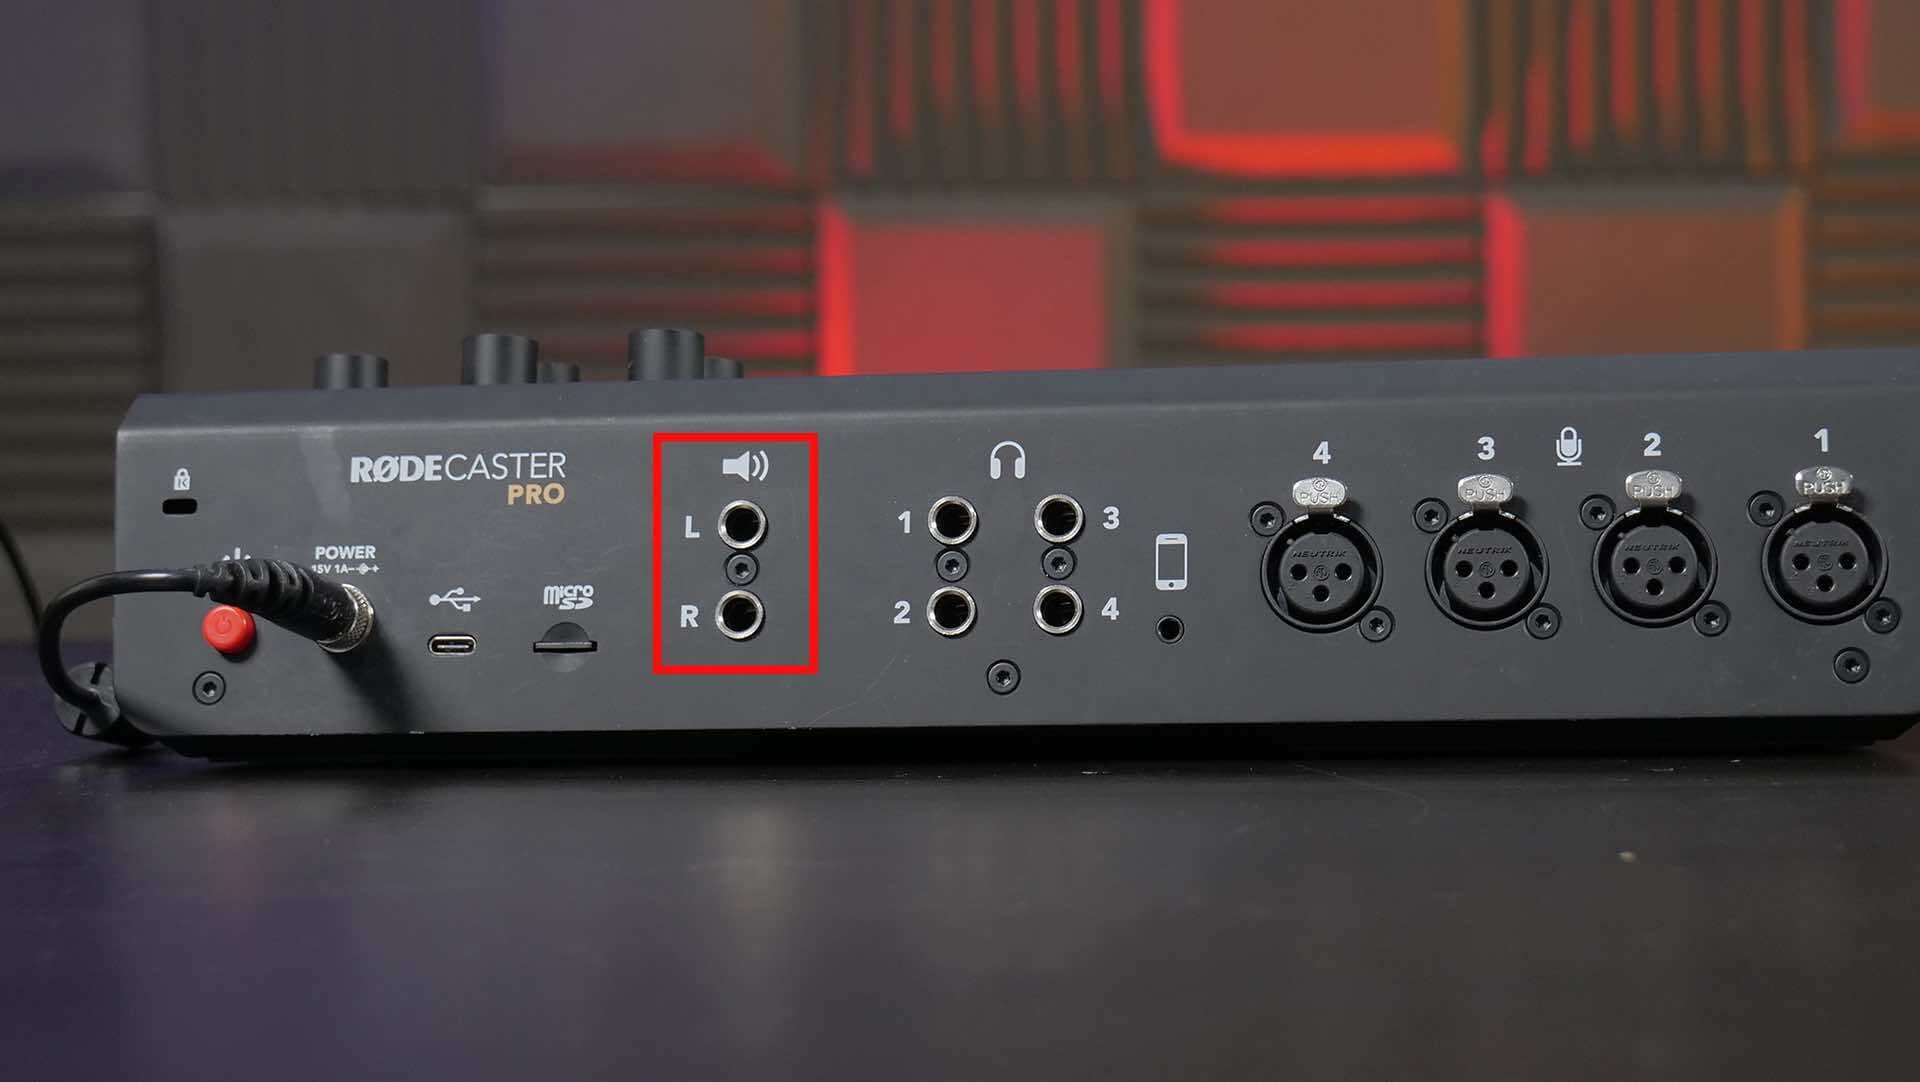 How to Broadcast Live Radio with the Rodecaster Pro Speaker Outputs